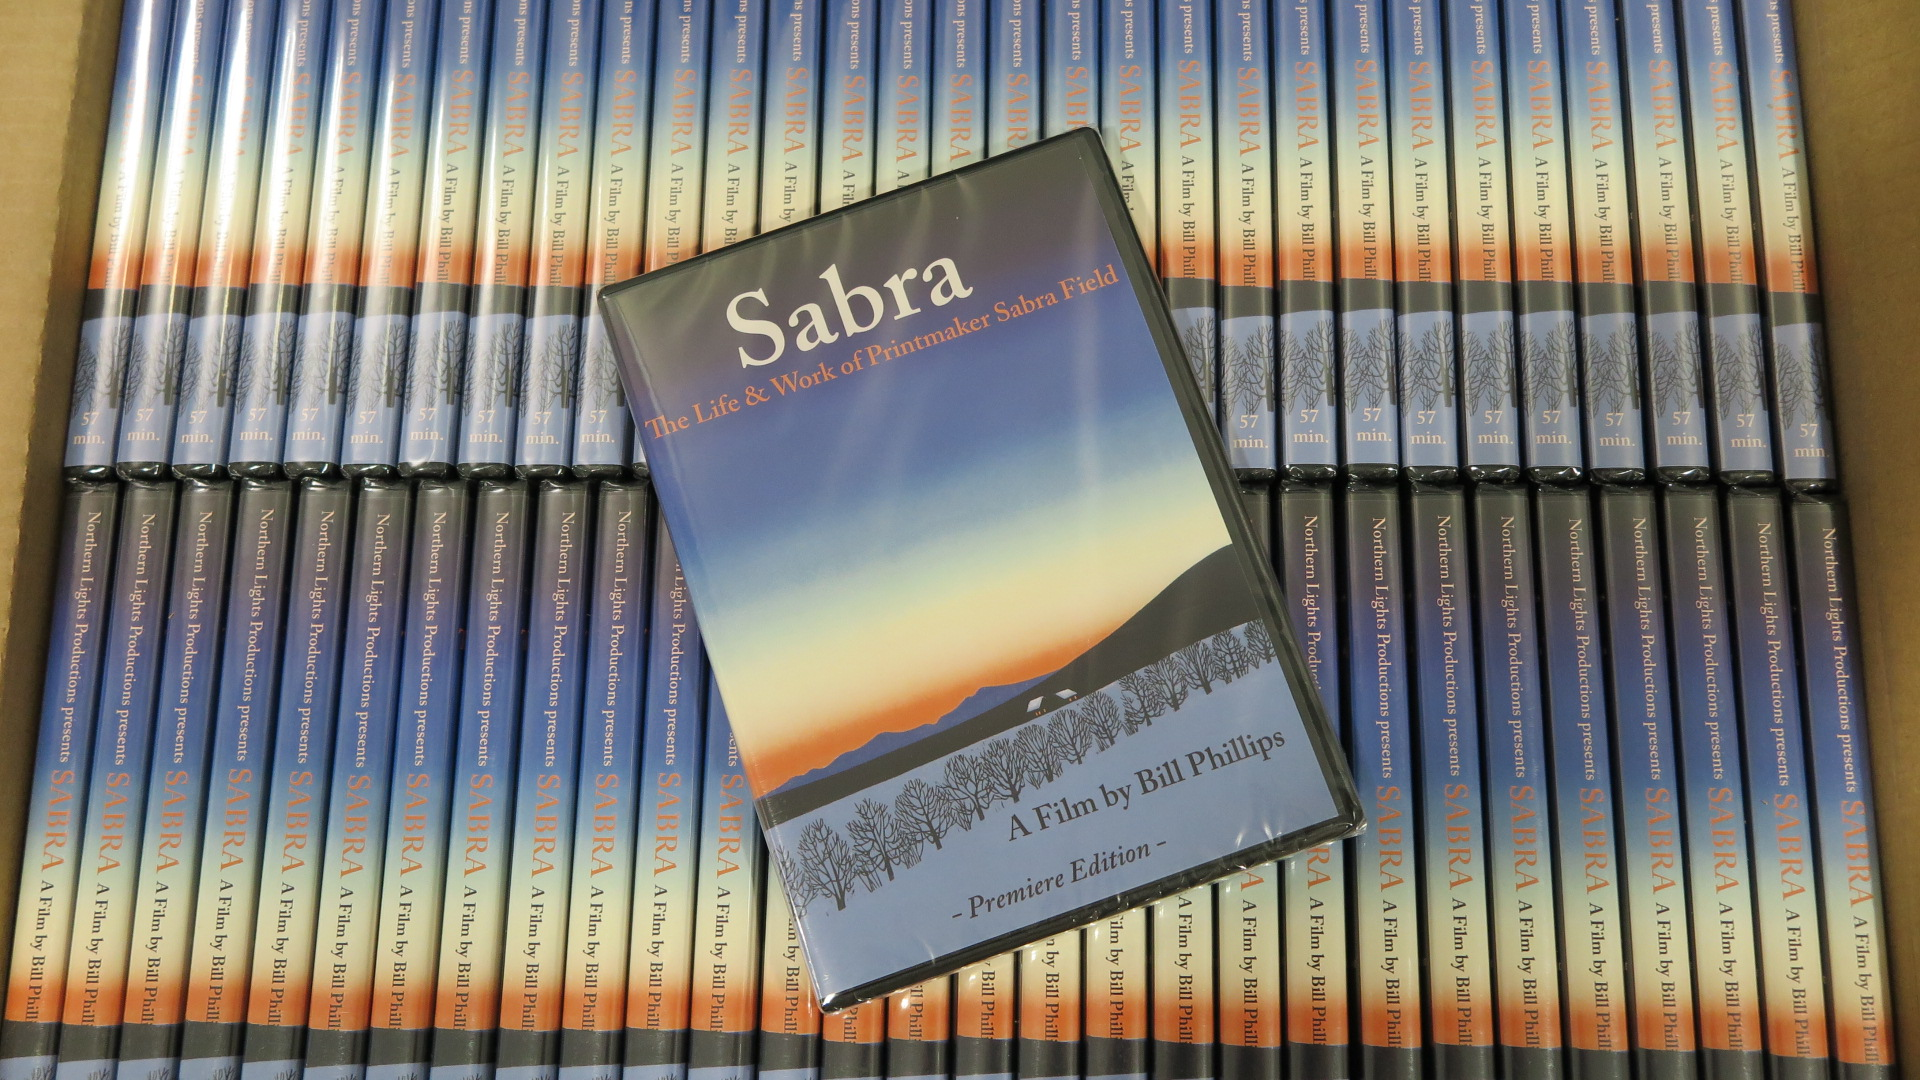 Sabra DVDs, premier edition ready to ship